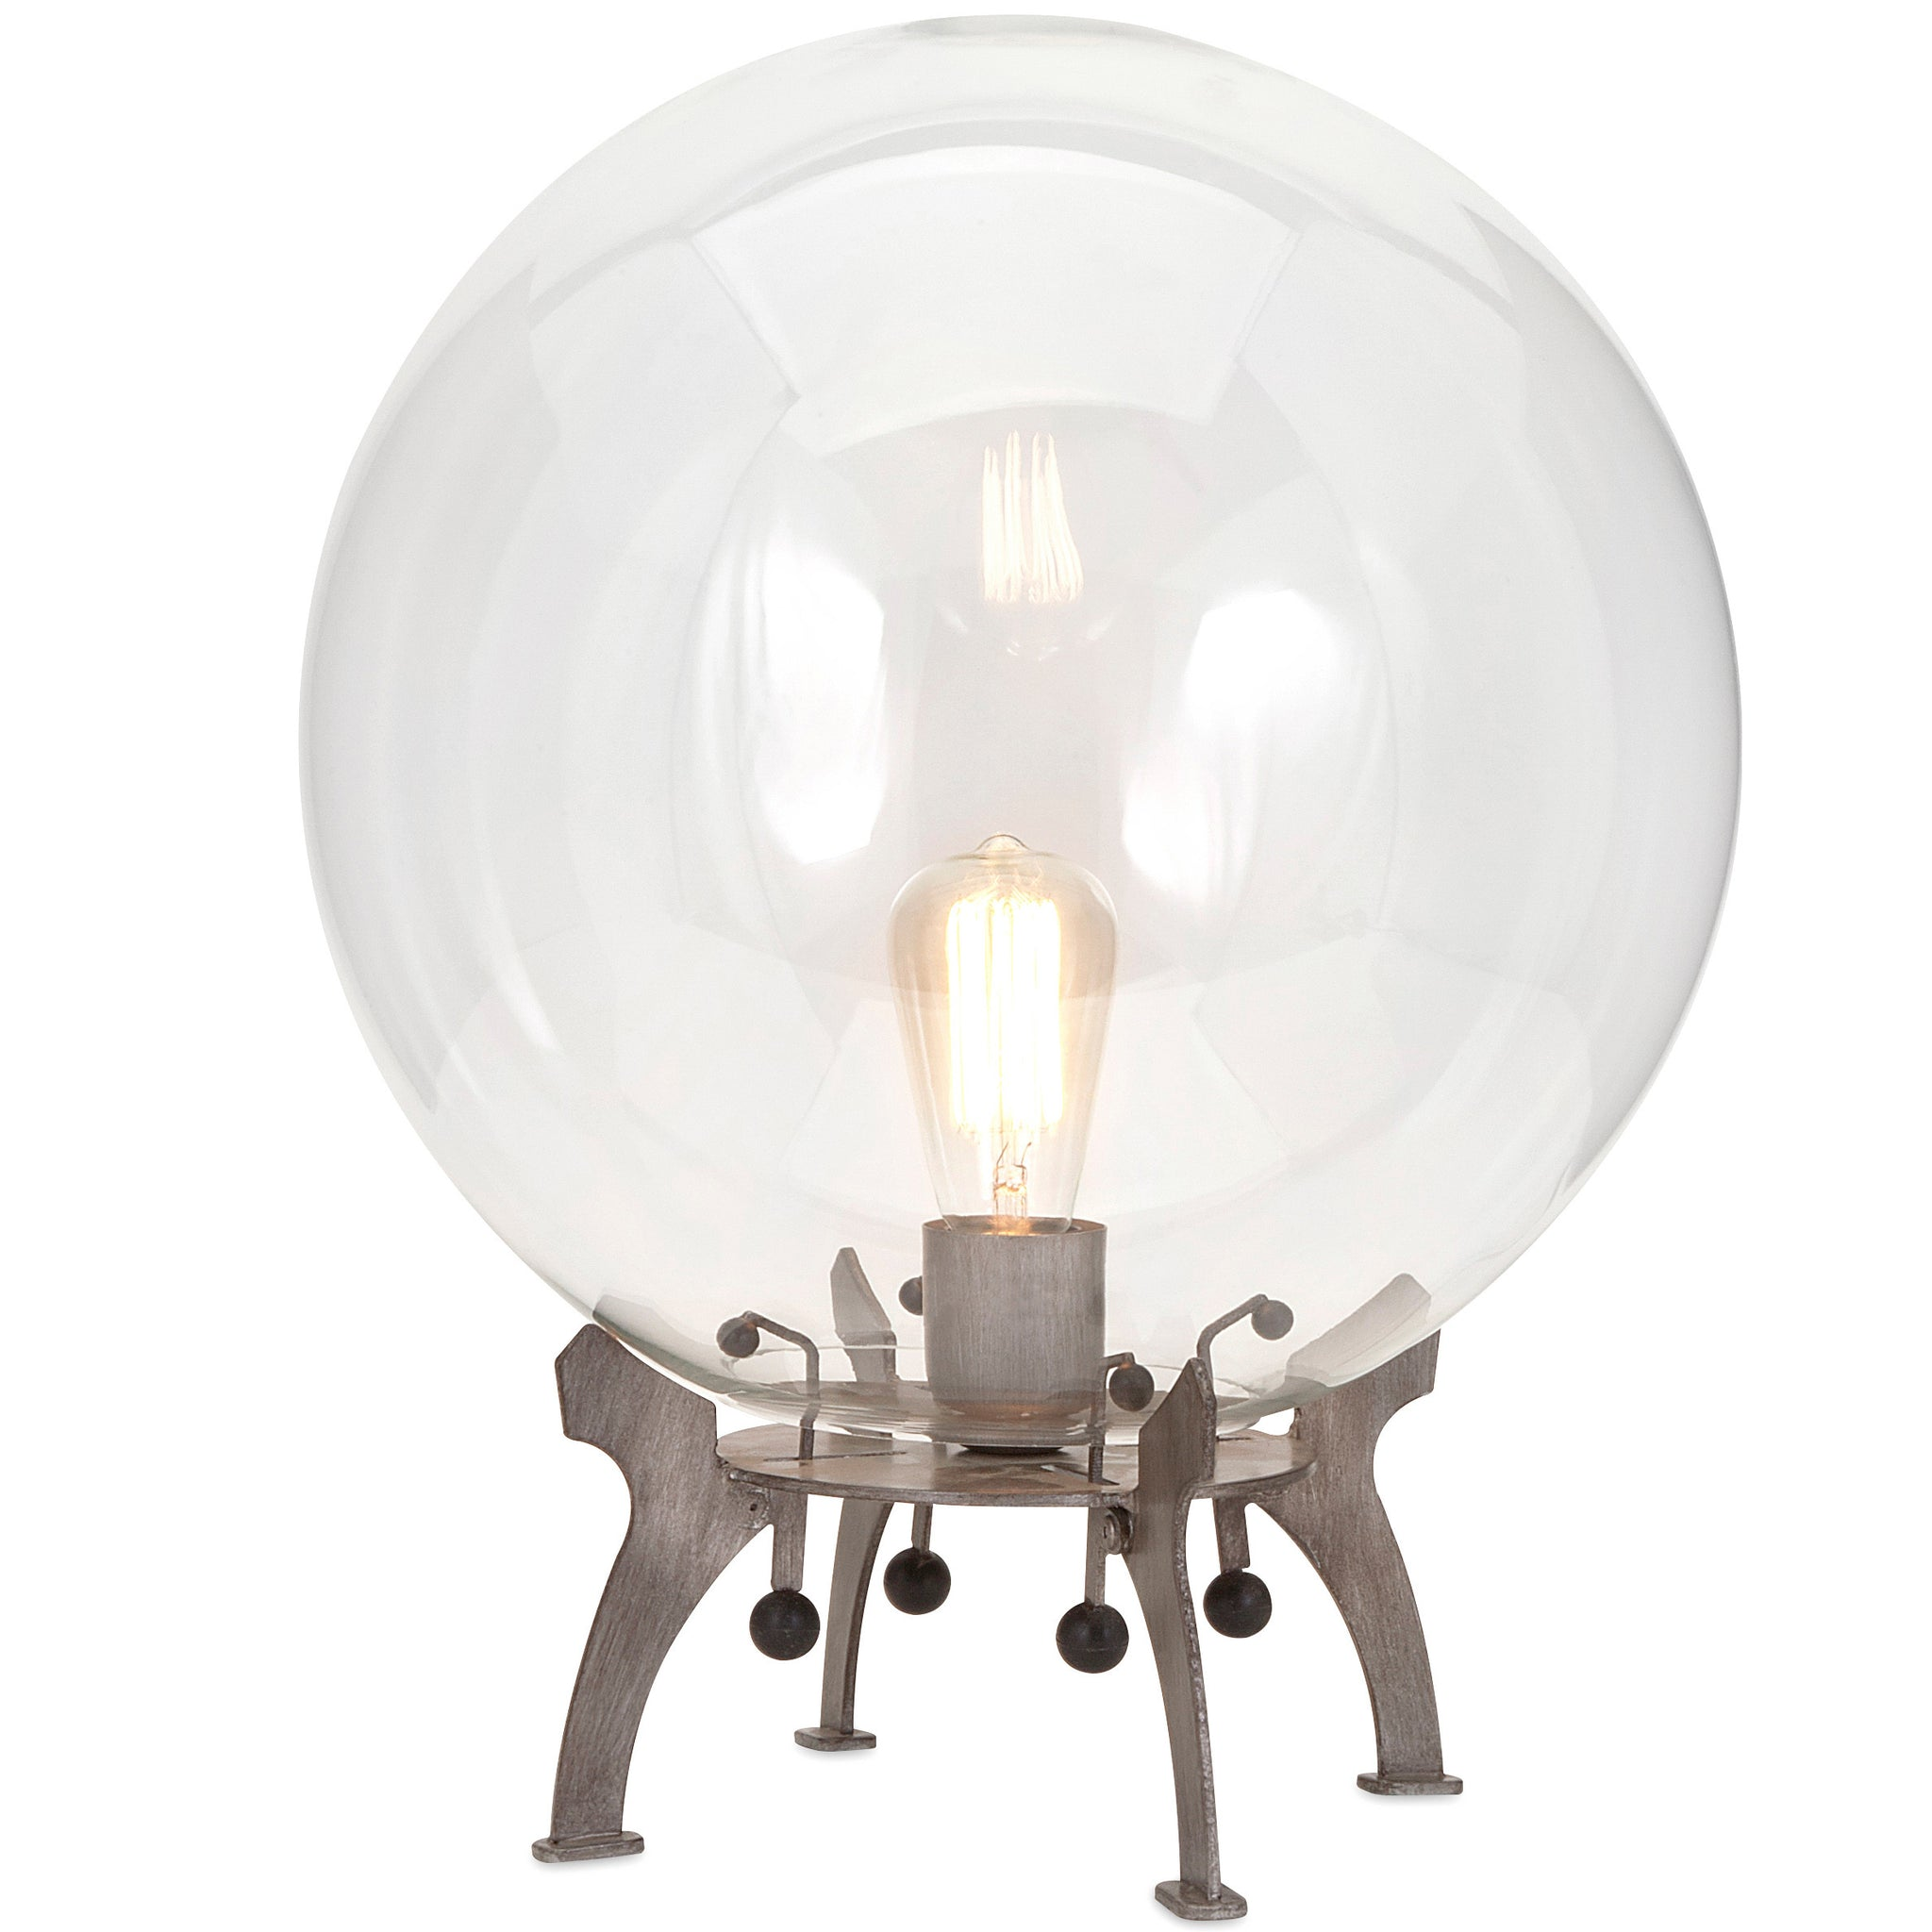 Large Glass Edison Globe Industrial Modern Table Lamp